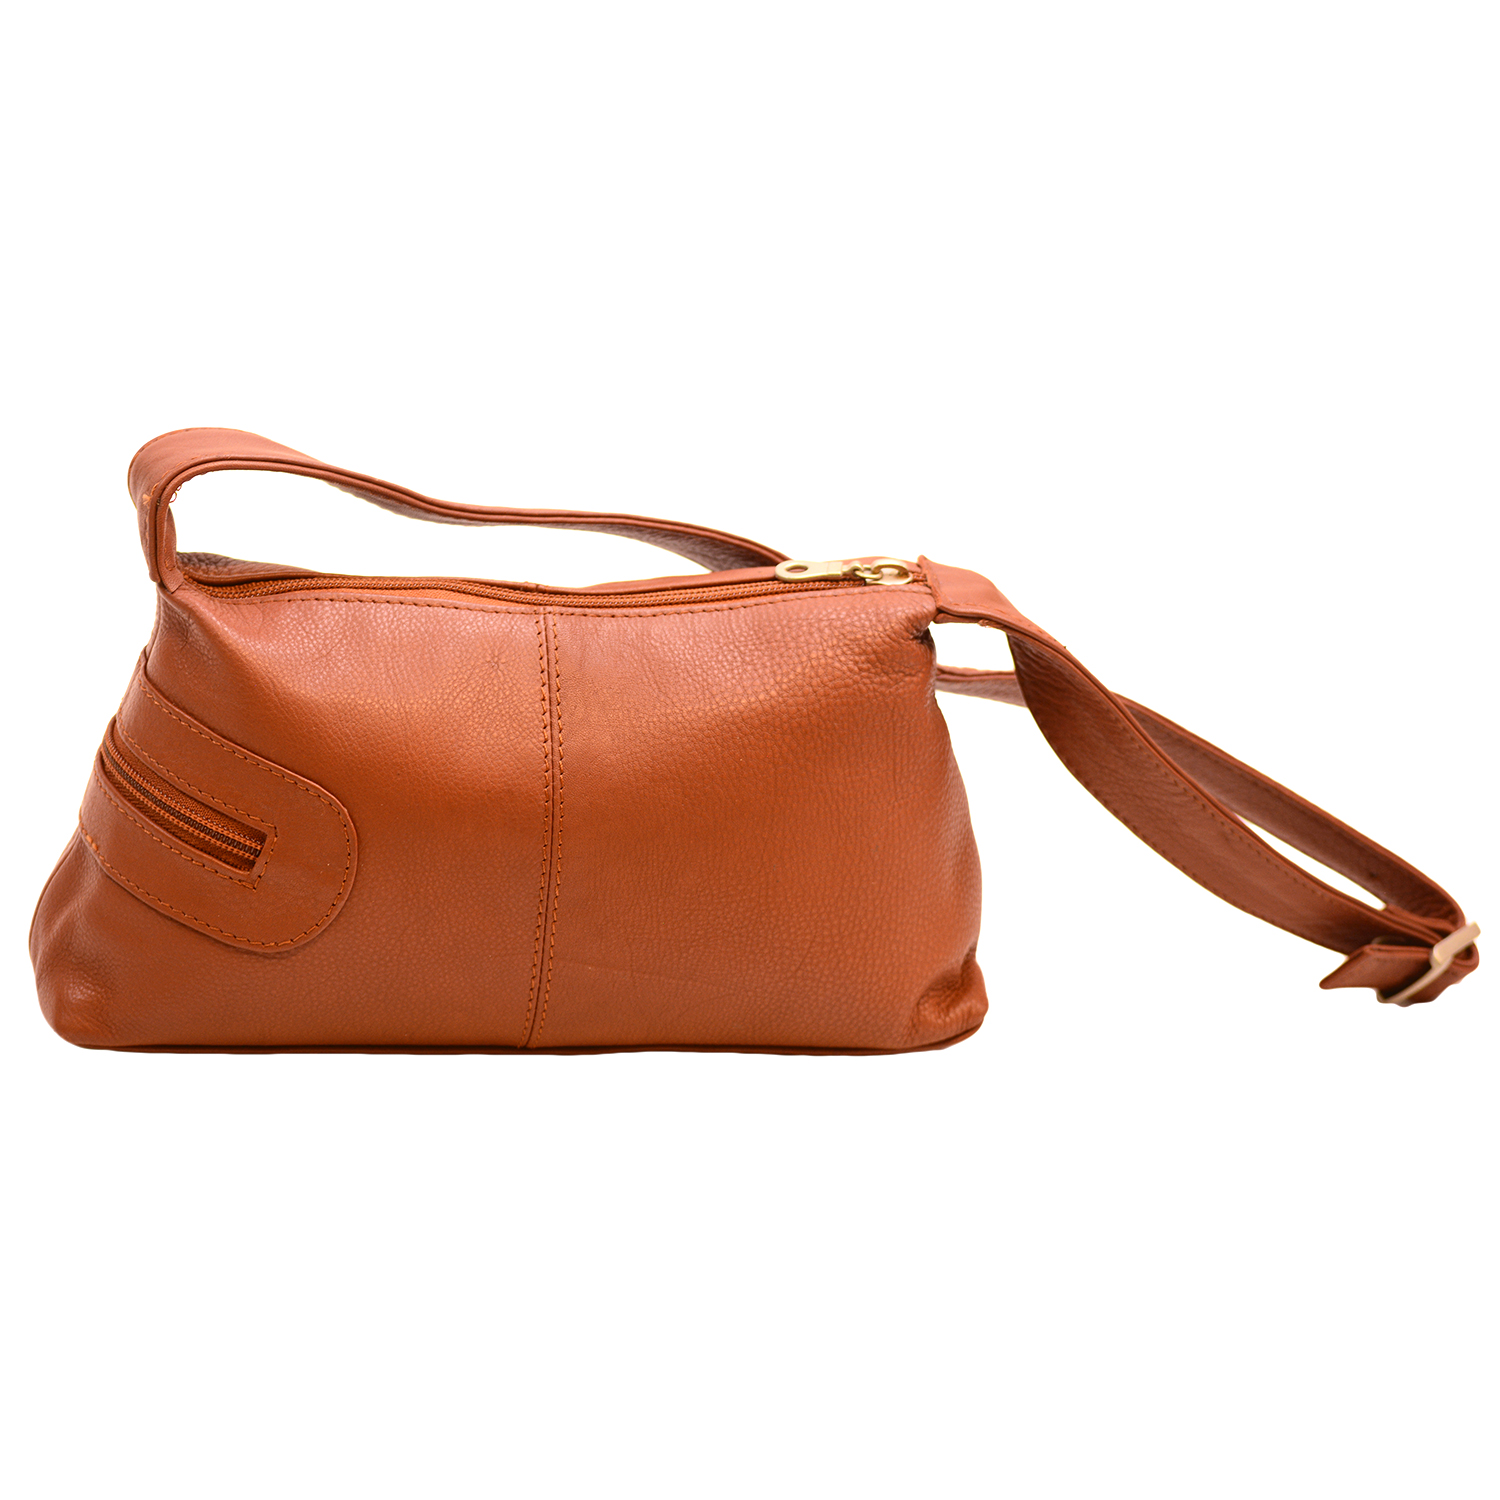 Overstock uses cookies to ensure you get the best experience on our site. If you continue on our site, you consent to the use of such cookies. Learn more. OK Clothing & Shoes / Handbags; Handbags. extra. 25% Women Leather Bags Tote Leather Handbags Messenger Bag Shoulder Bag. 1 Review.